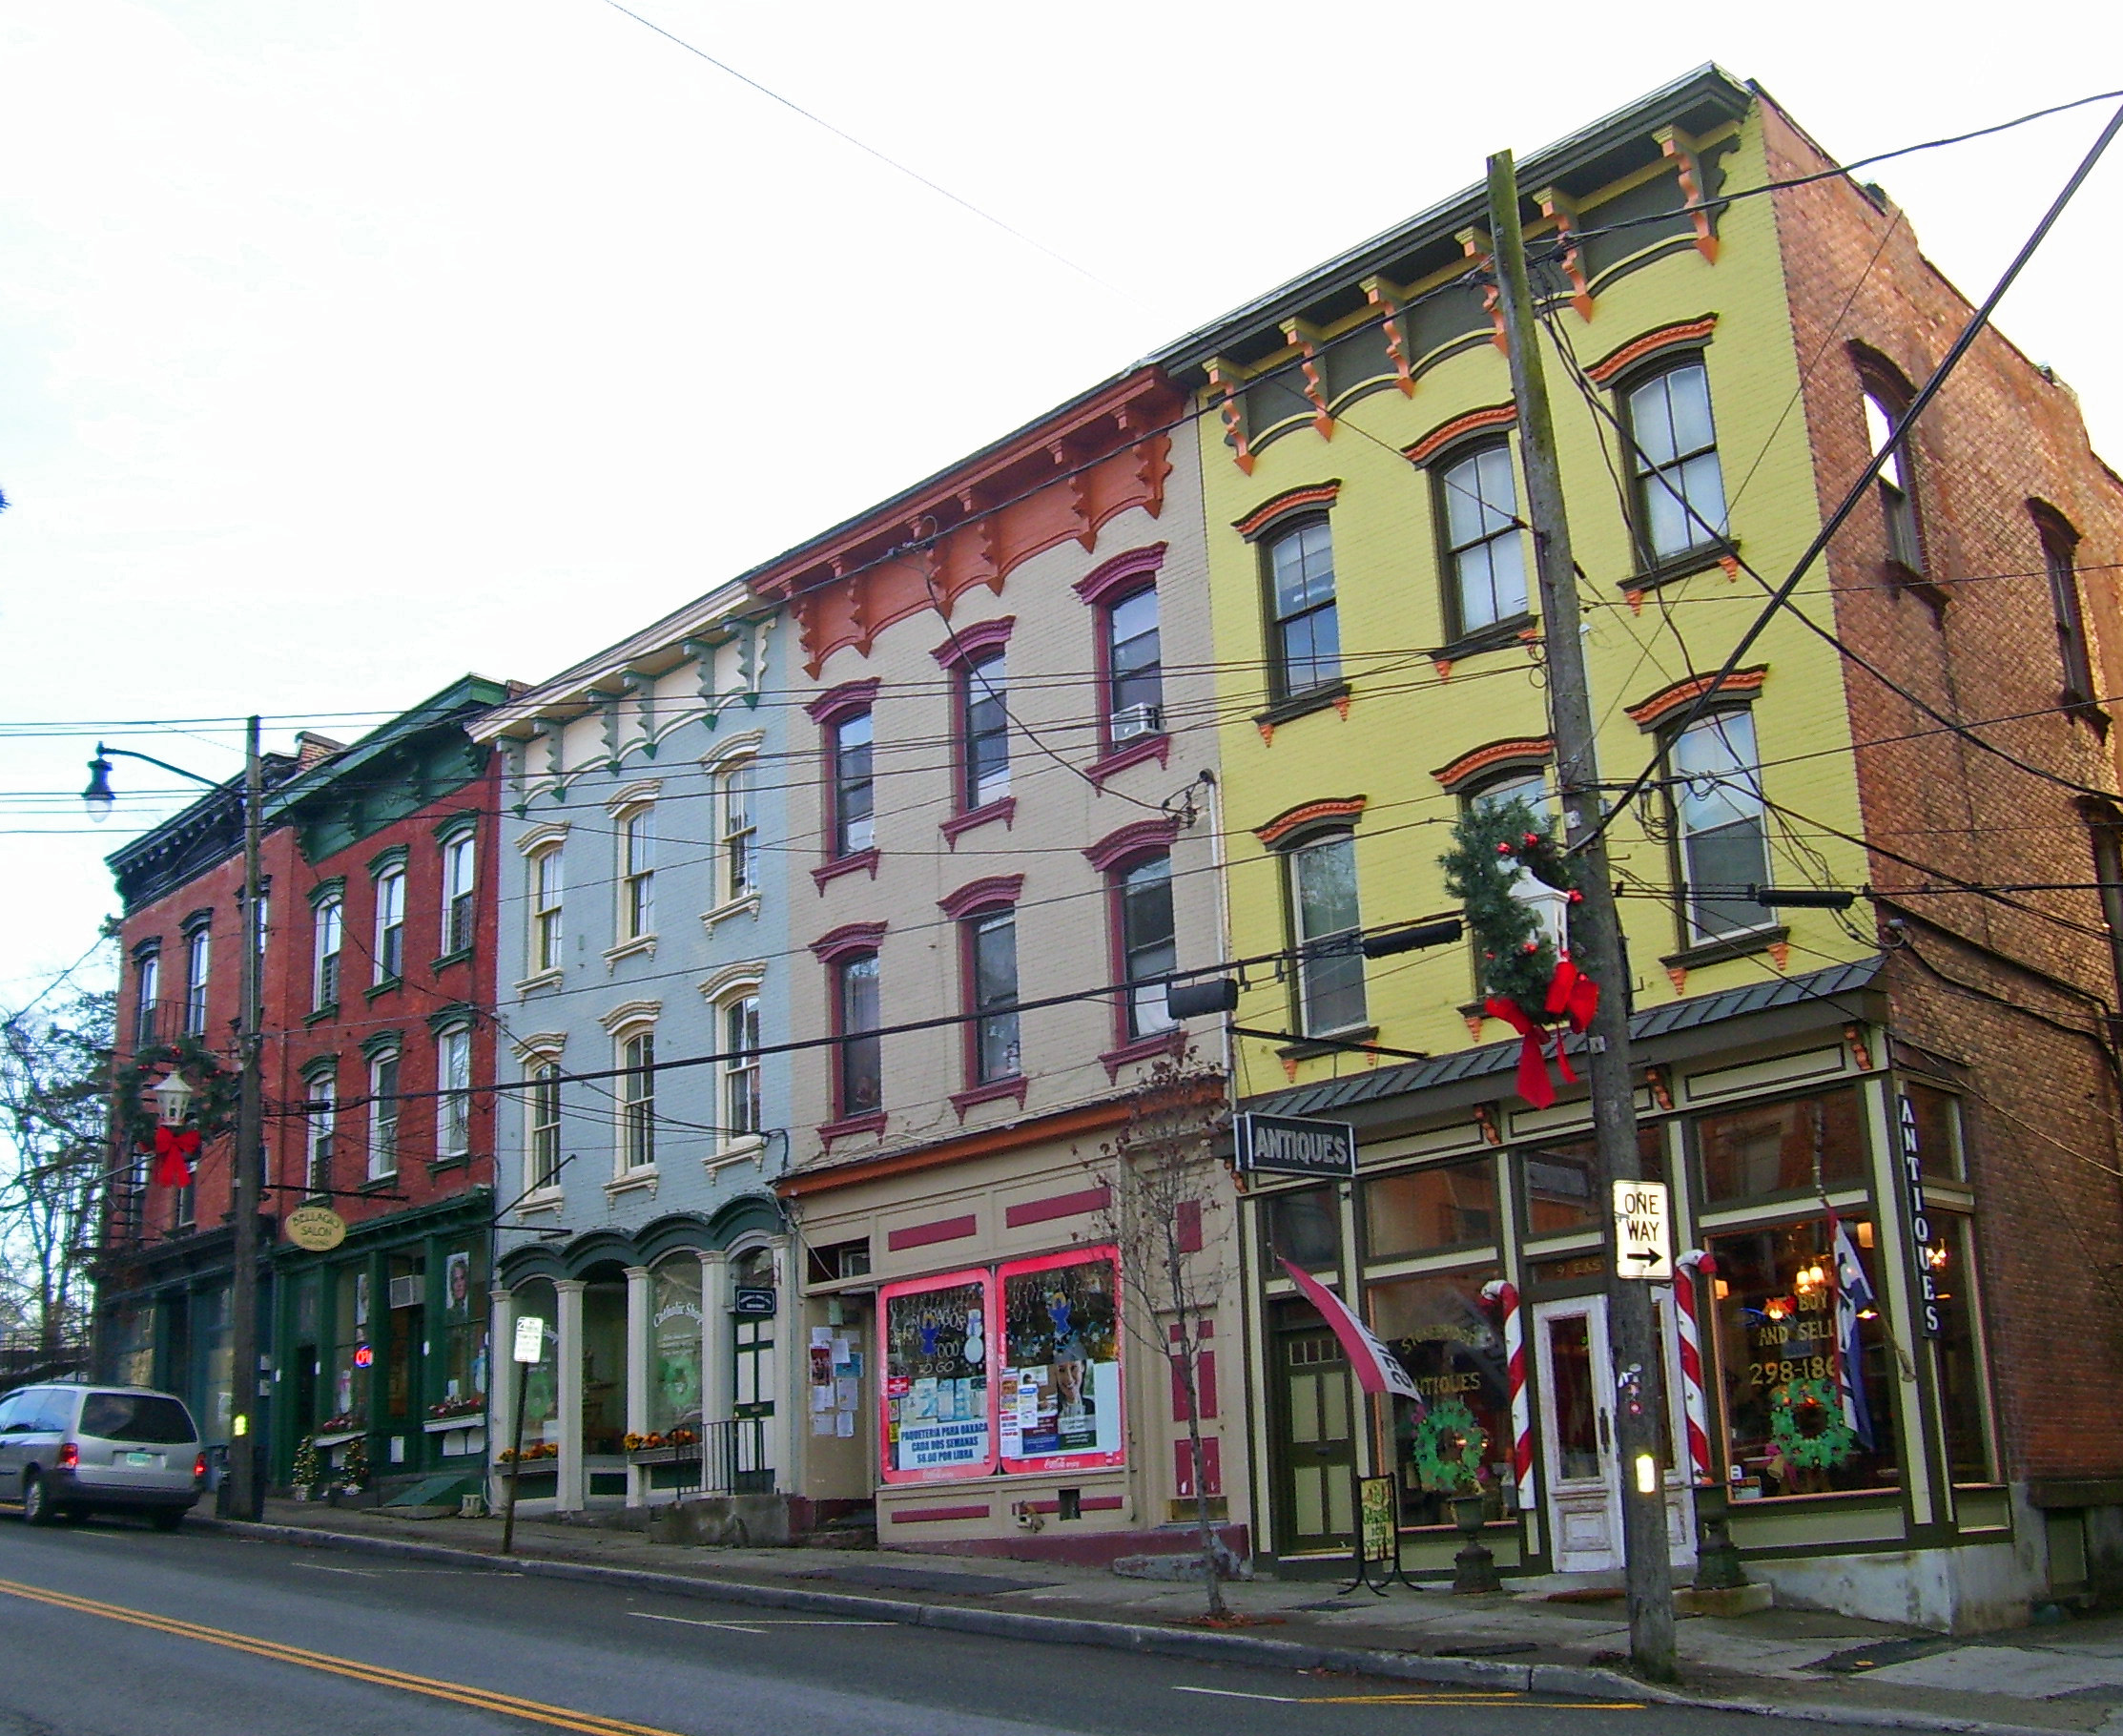 File:Downtown Wappingers Falls, NY.jpg - Wikipedia, the free ...